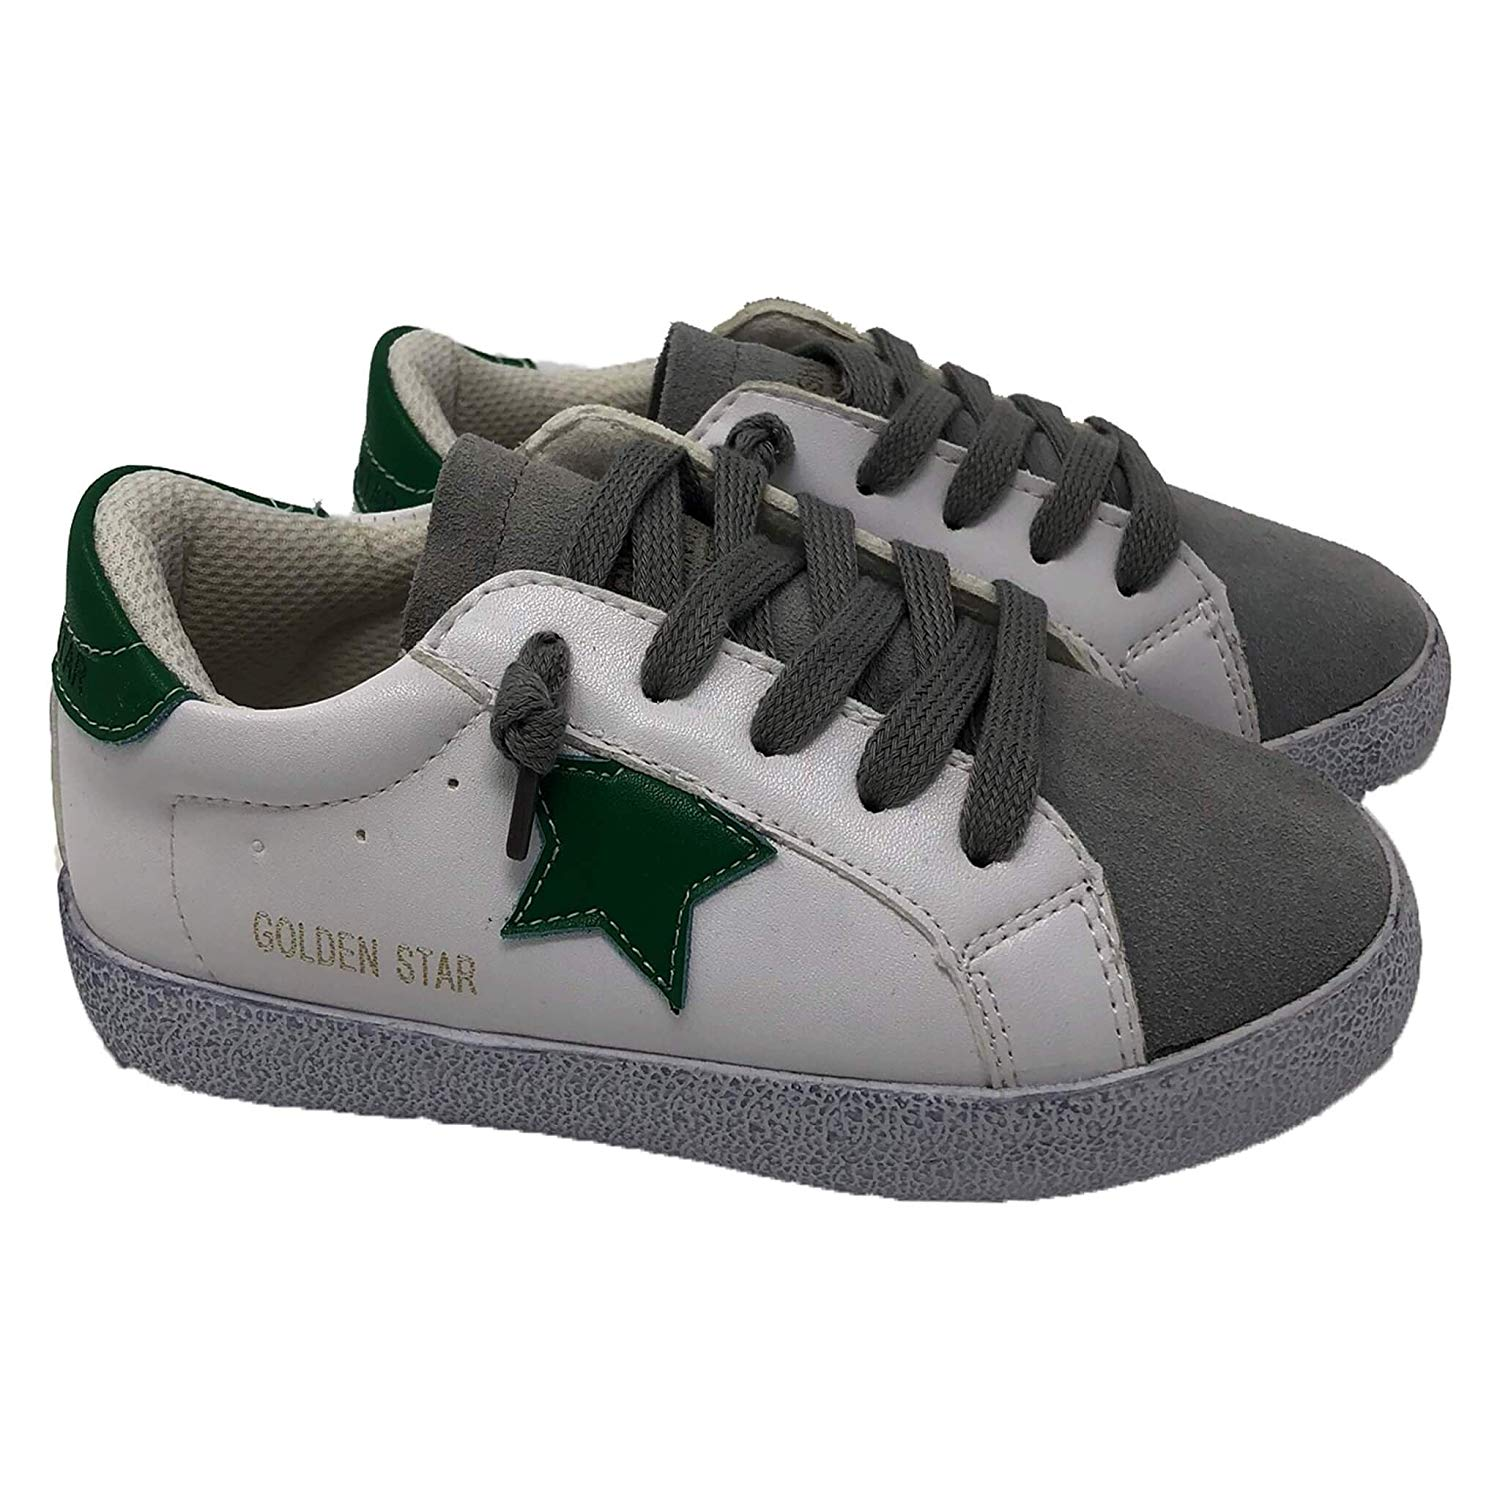 03d979b7a24c Get Quotations · Fashion Fur Ur Kids Sneakers Star Green